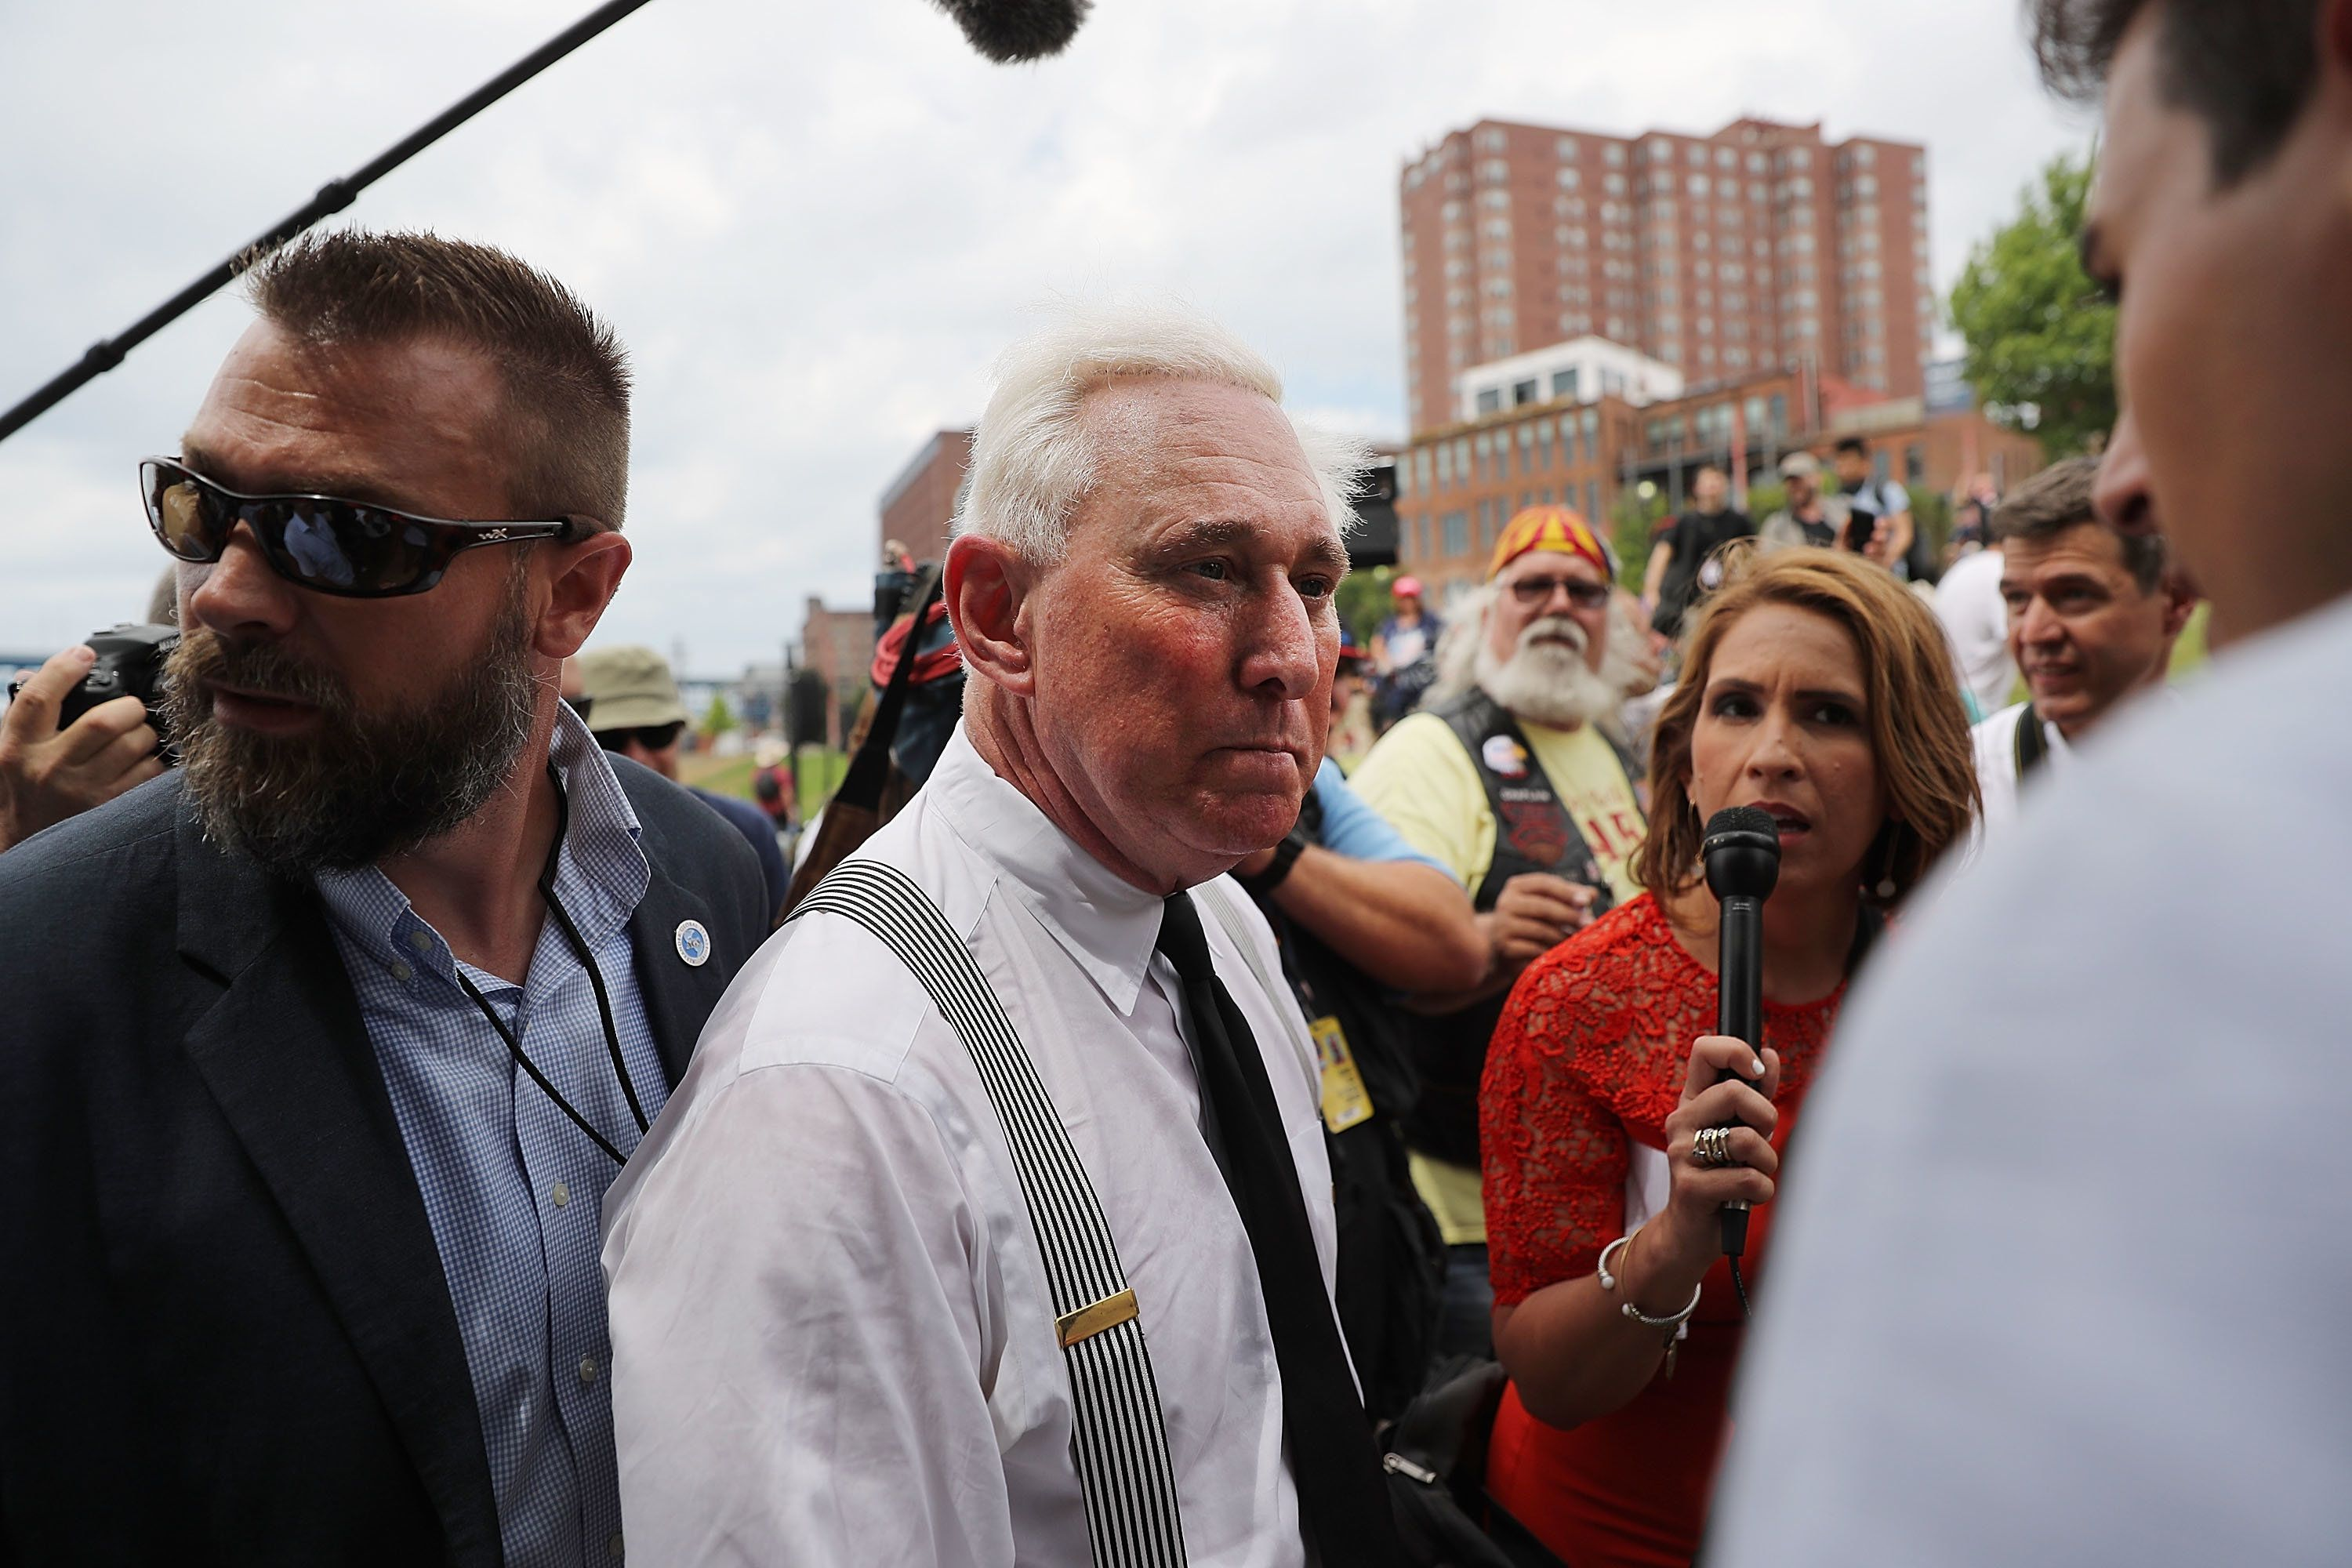 Roger Stone leaves open possibility of cooperating with special counsel